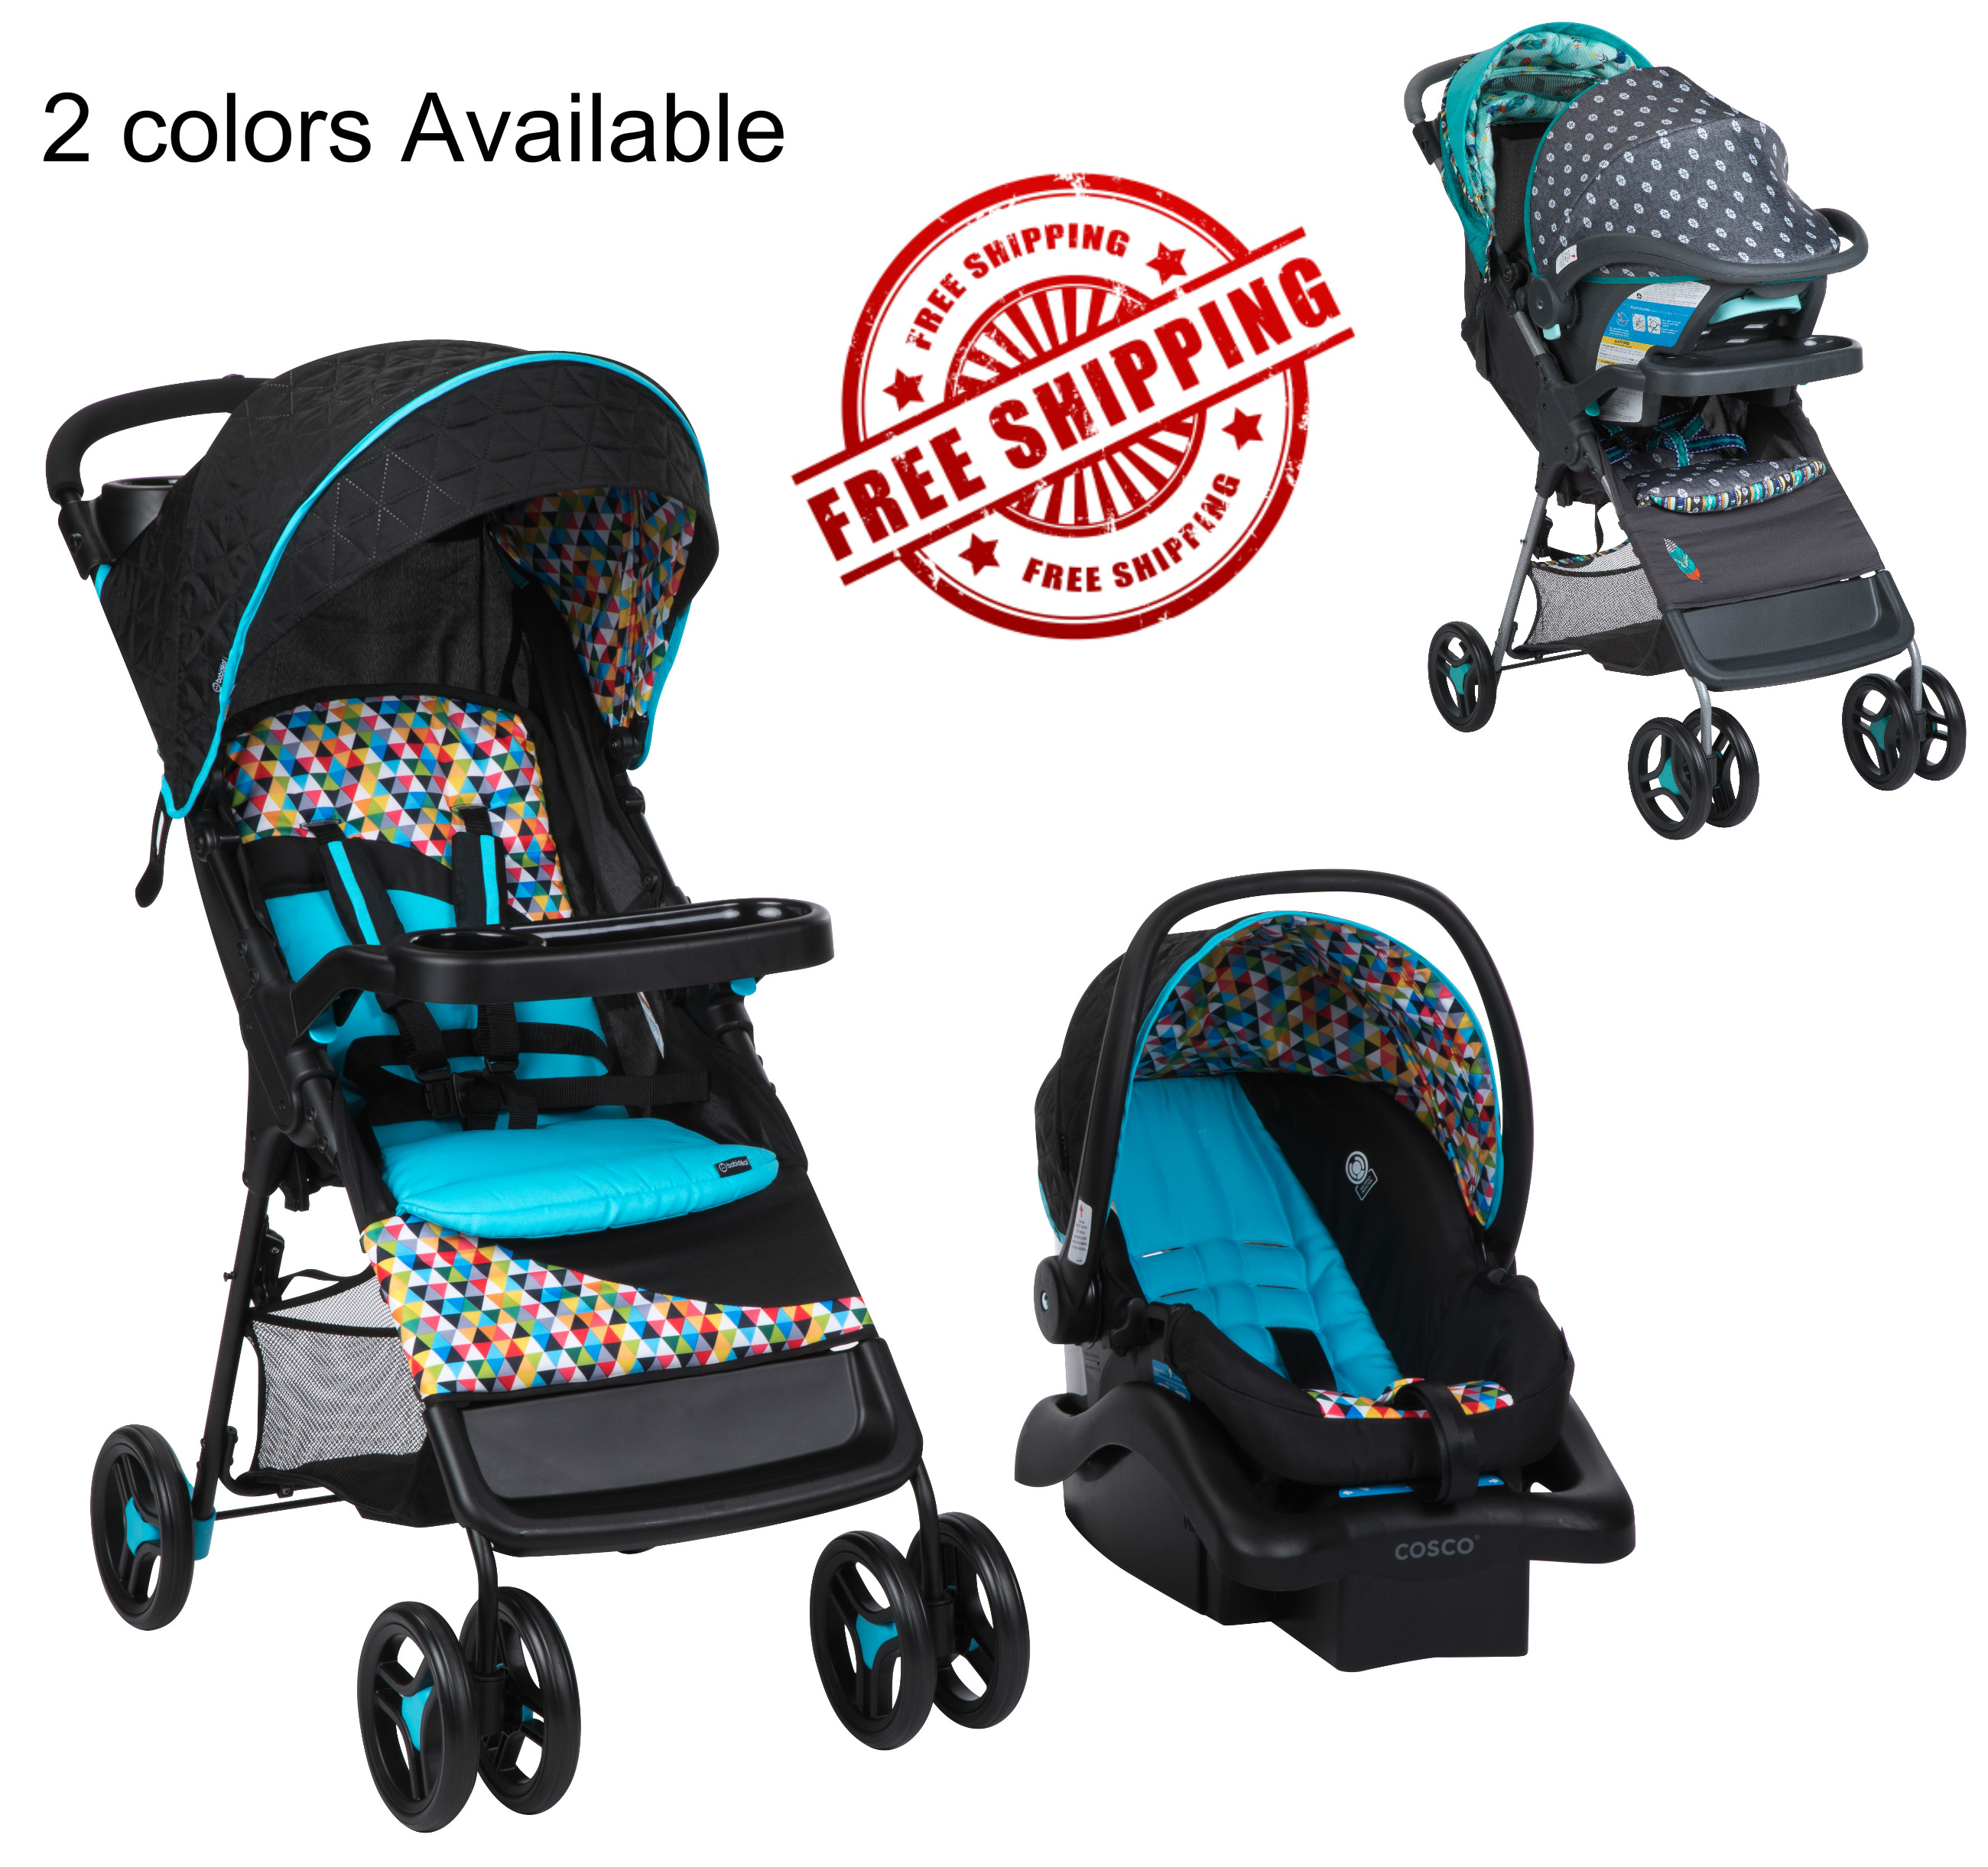 Baby Infant Car Seat Stroller Combo Boys Girl Travel System W Cup